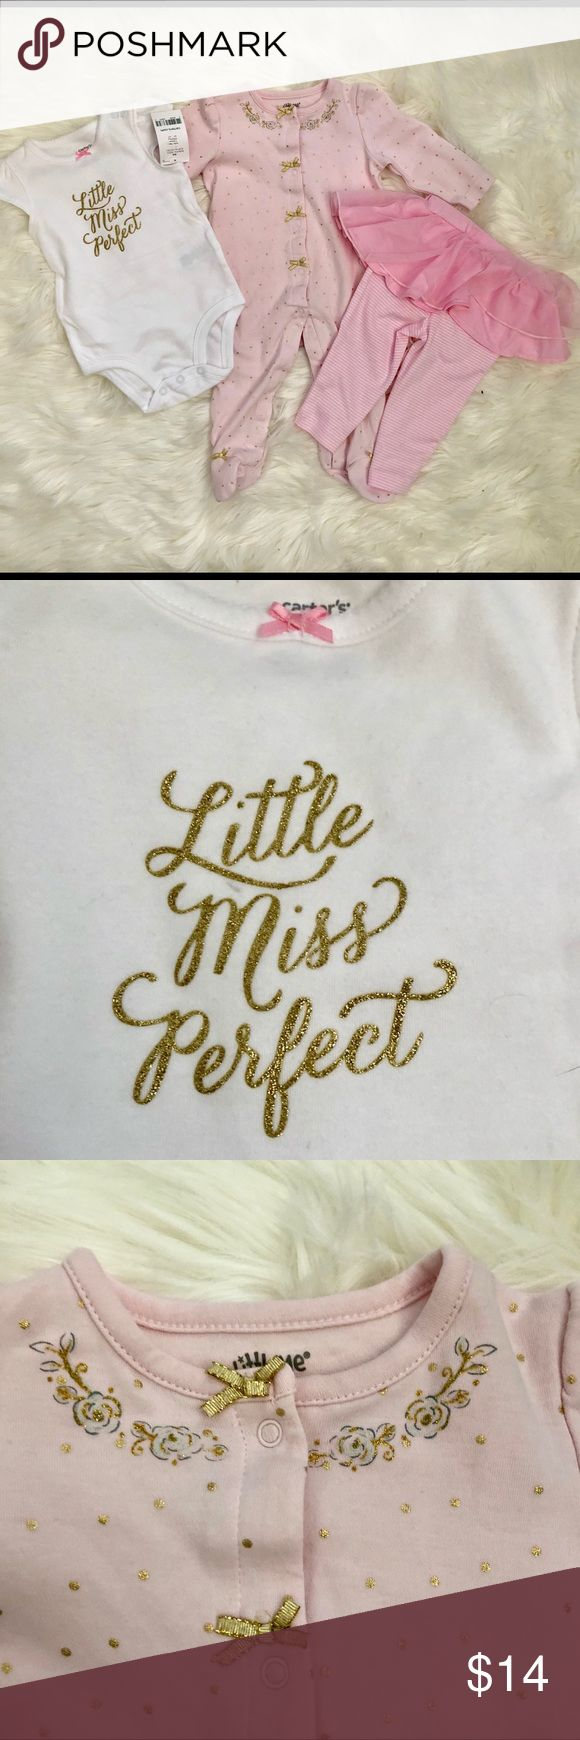 """Little Miss Perfect Set - 6 mos Adorable onesie & pants with tutu set. Pink, White & Gold """"Little Miss Perfect"""". Pink & Gold polka dot footie pajama with gold bows. 6 mos. NWT perfect shower gift! Carter's Matching Sets"""